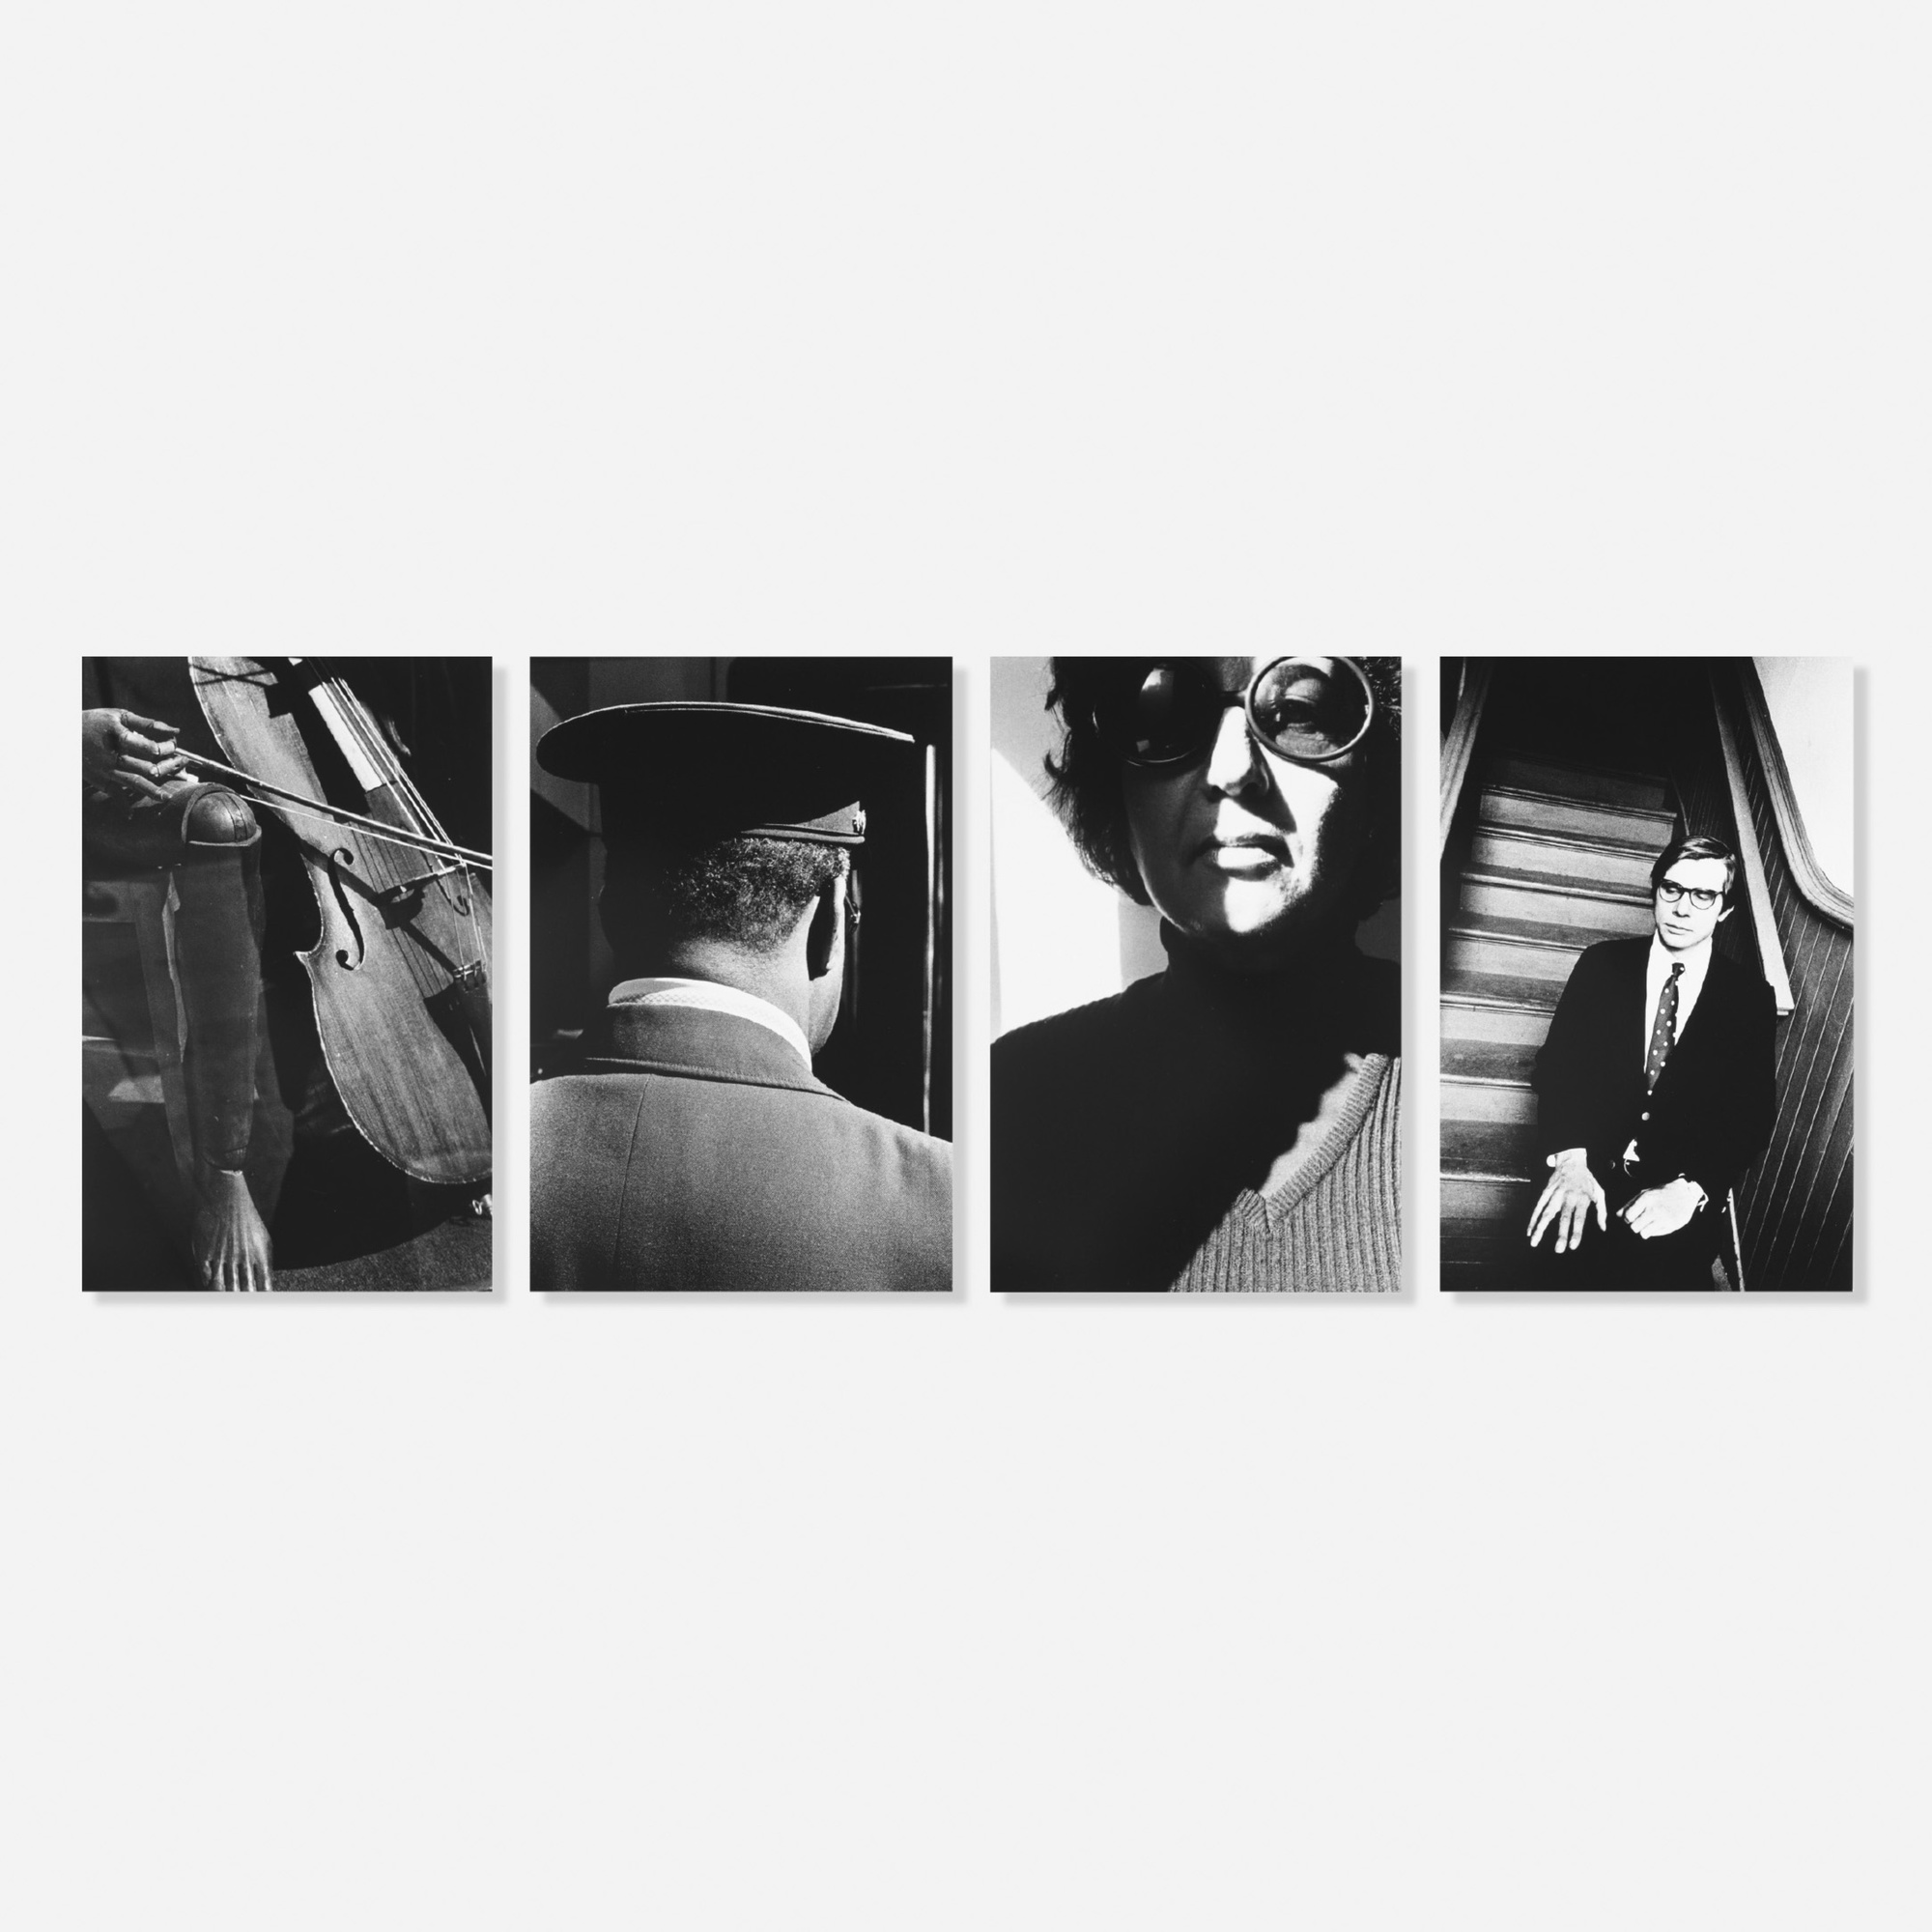 306: Ralph Gibson / Collection of twenty works (5 of 5)